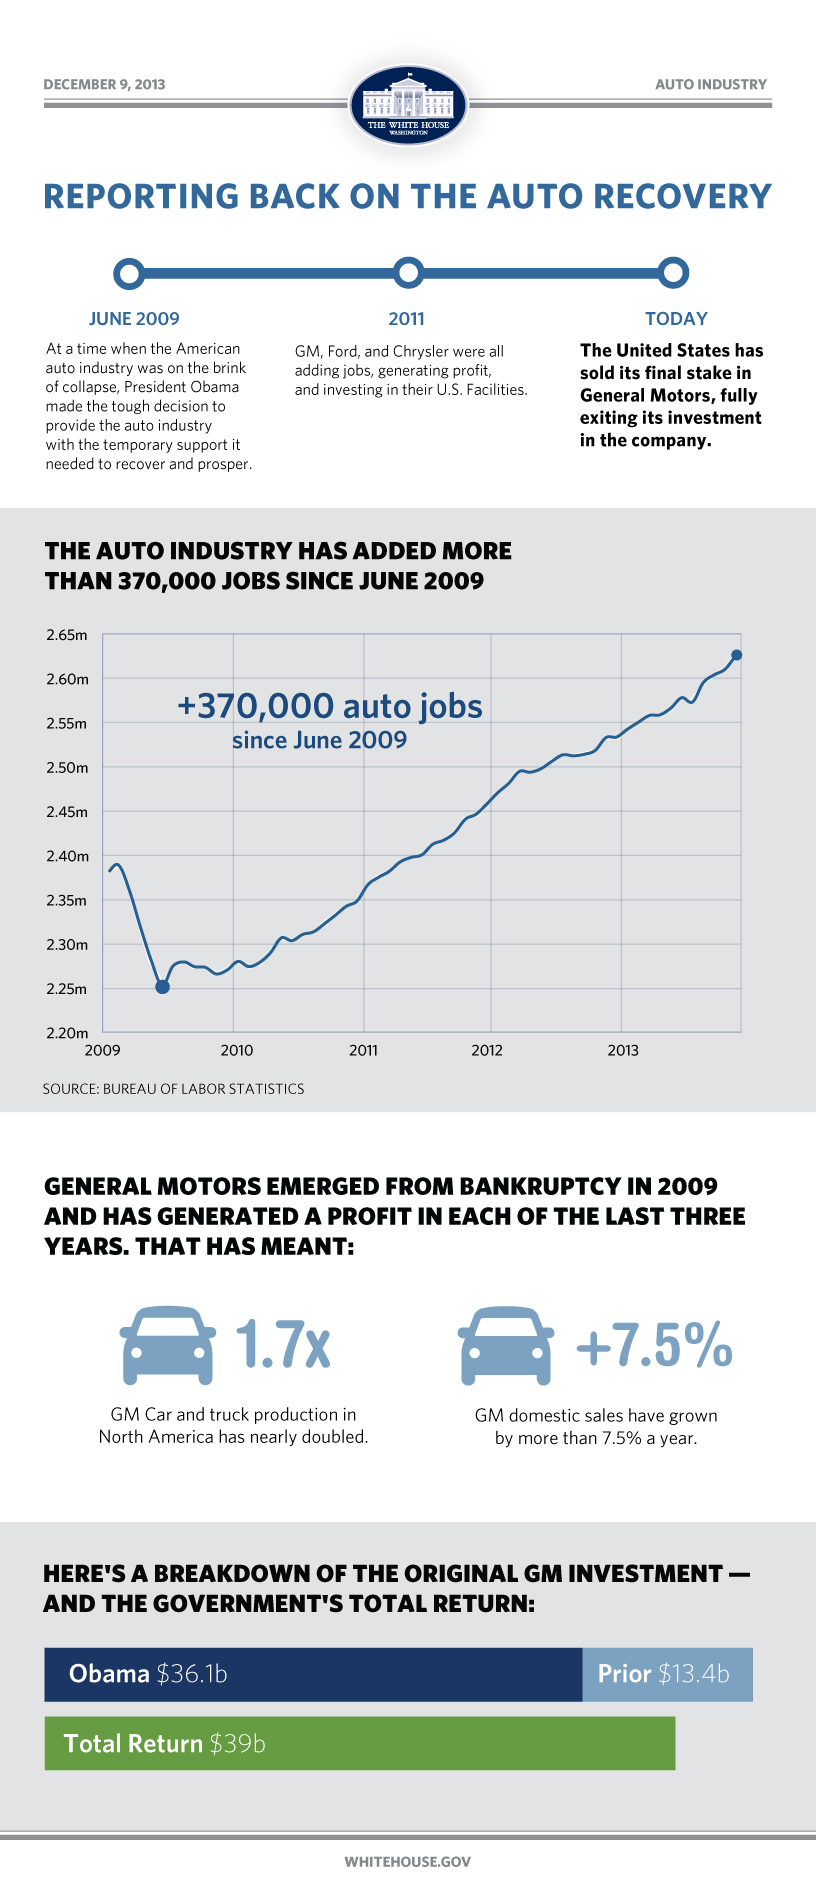 We no longer own a stake in GM, and the auto recovery worked.